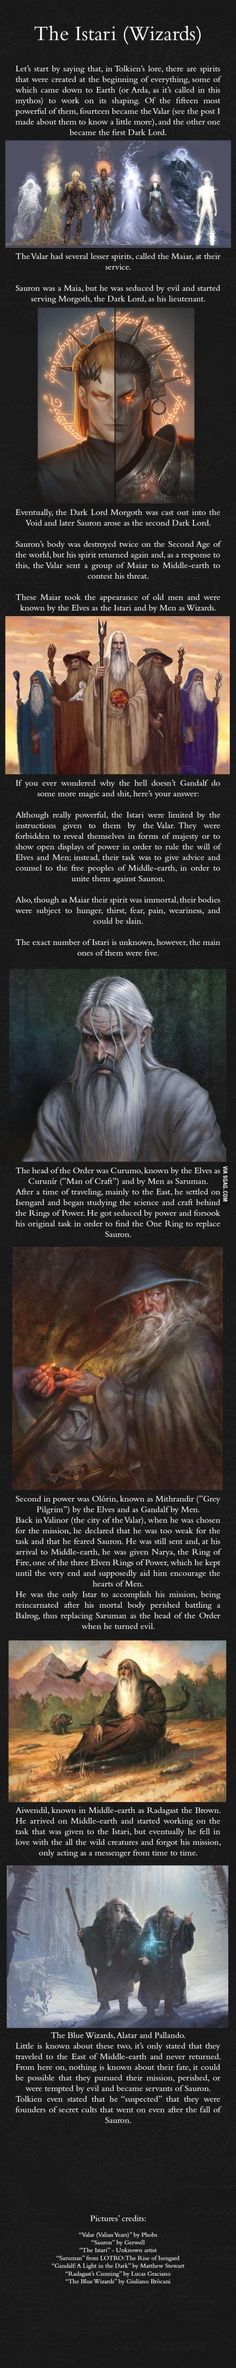 Understanding the wizards in JRR Tolkien's world.